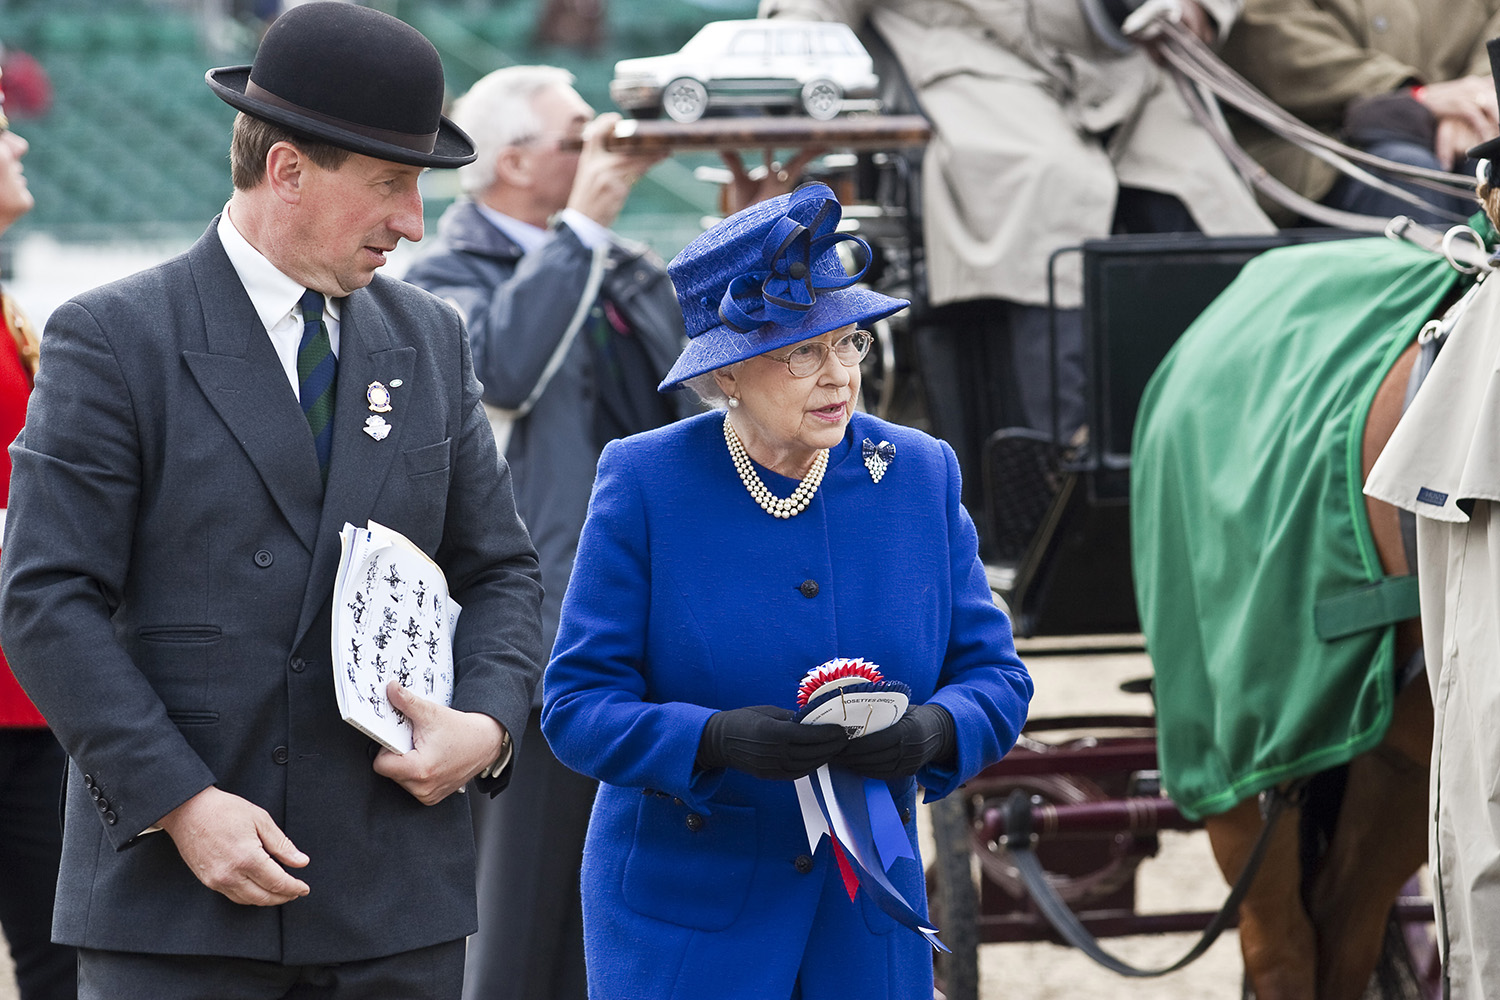 HM The Queen and my catalogue for Royal Winsor Horse Show 2009